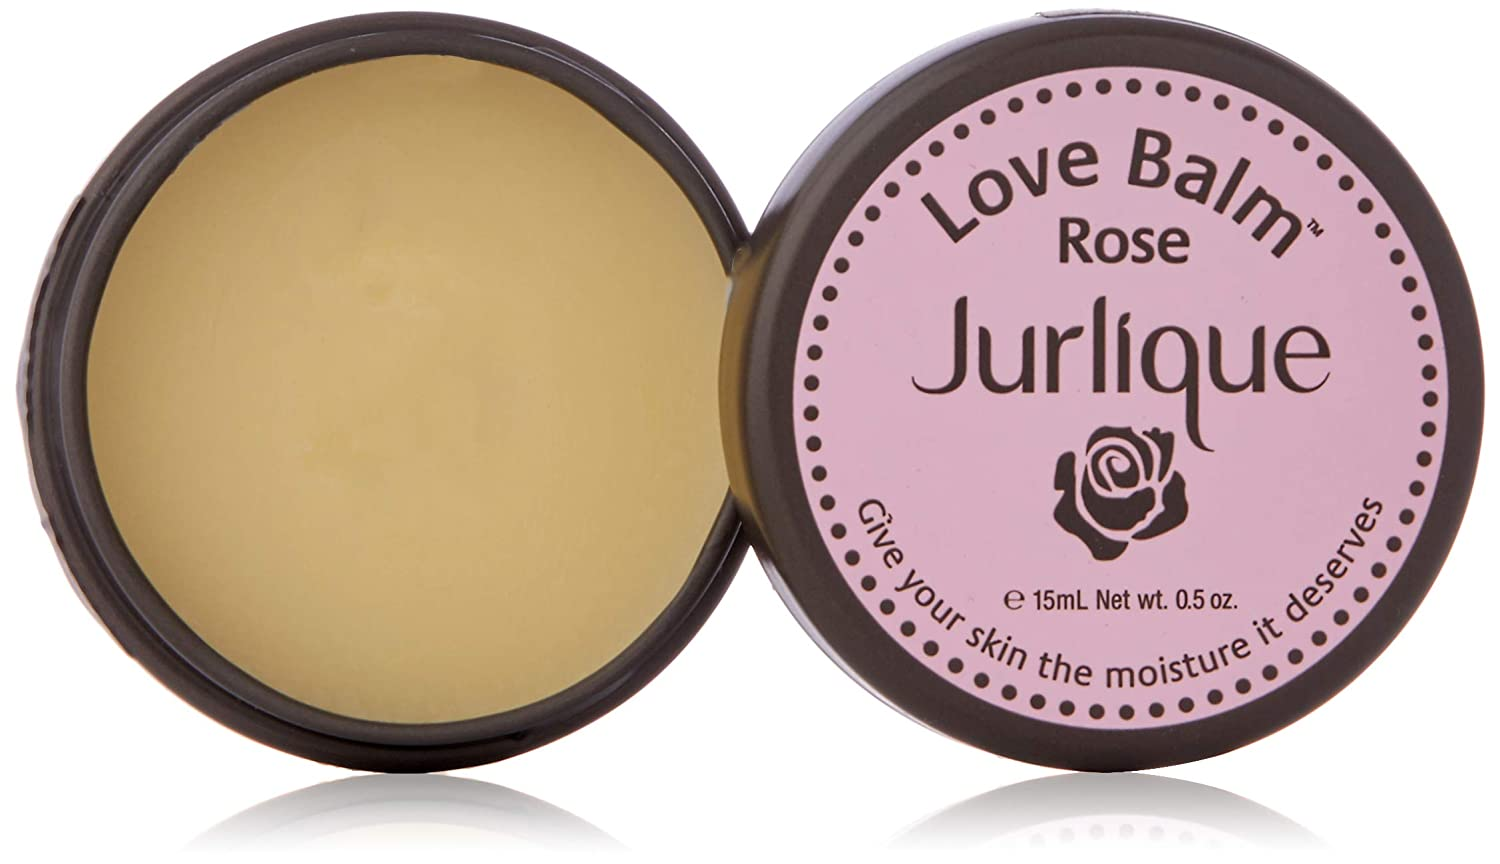 Moisturizing Lip Balm - Jurlique: Rose Love Balm - 0.5 oz - Moisturizes and Protects Dry Skin, Hydrates and Softens With Olive Oil and Safflower Seed Oil, Infused With The Natural Scent of Roses